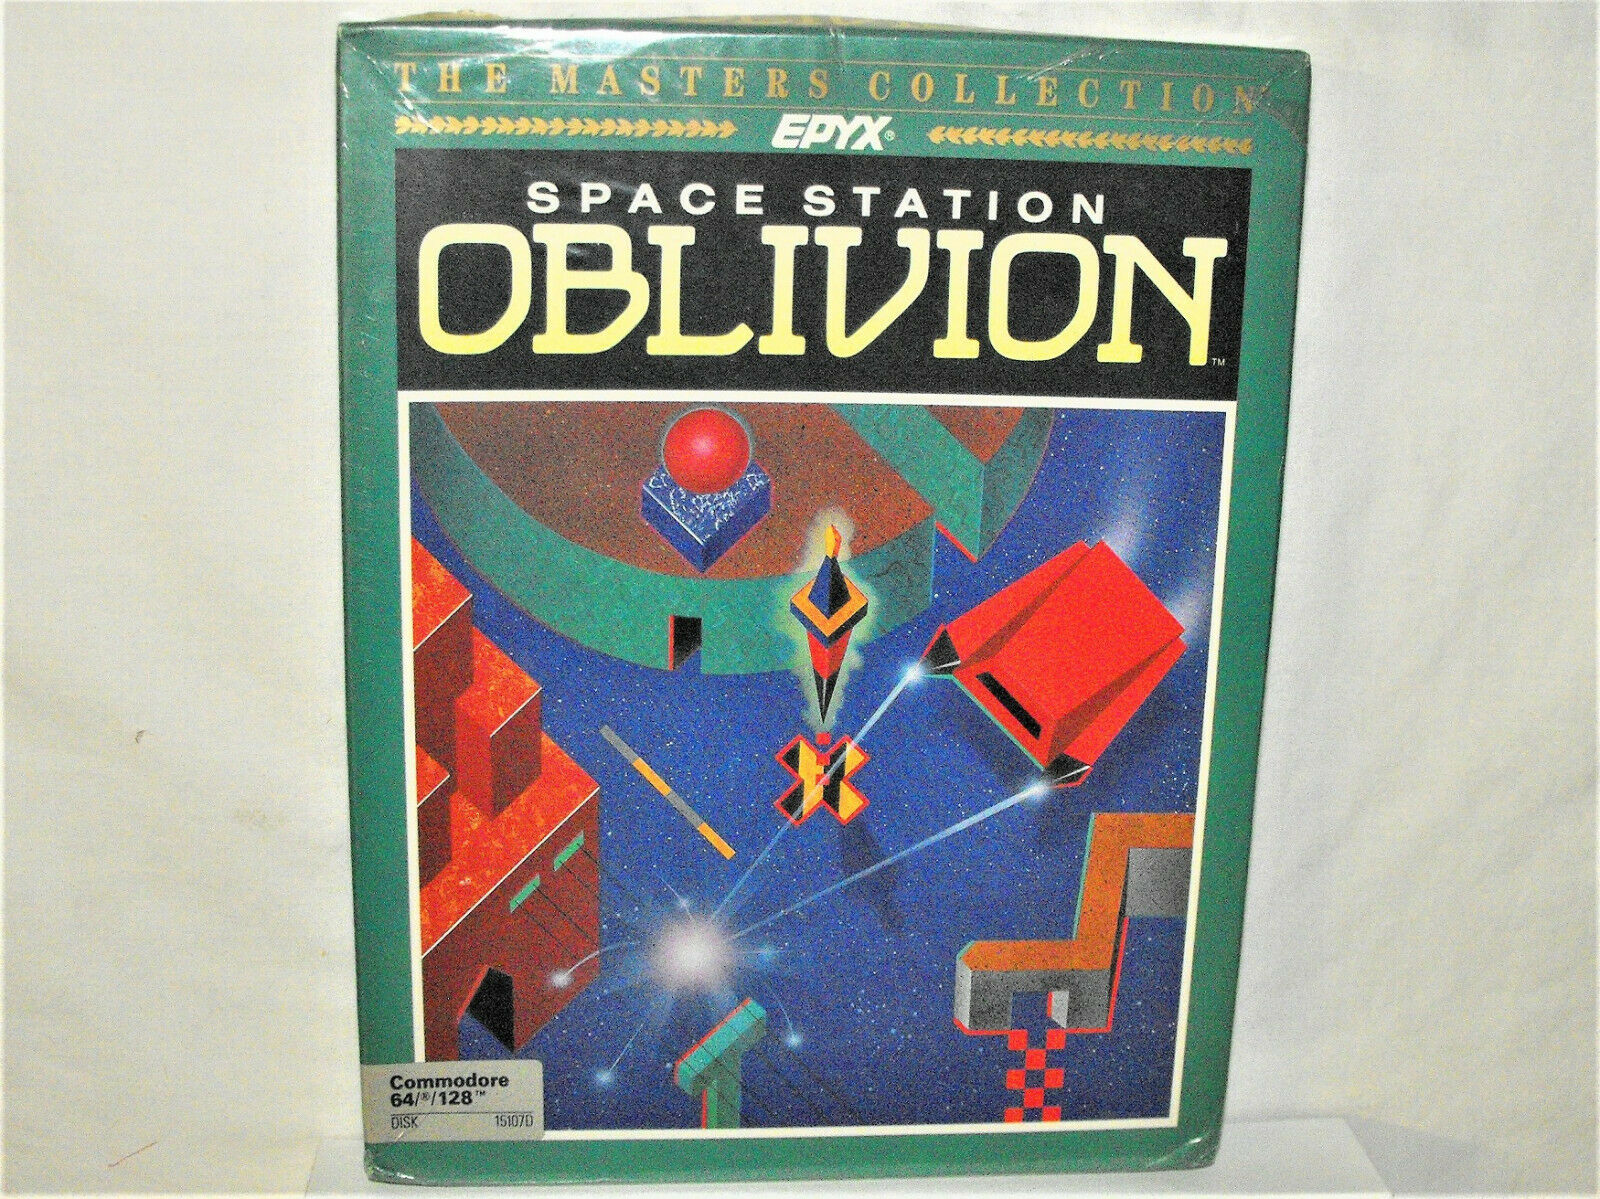 Computer Games - Commodore 64/128 PC Computer Game SPACE STATION OBLIVION Sealed Box EPYX Disk NR